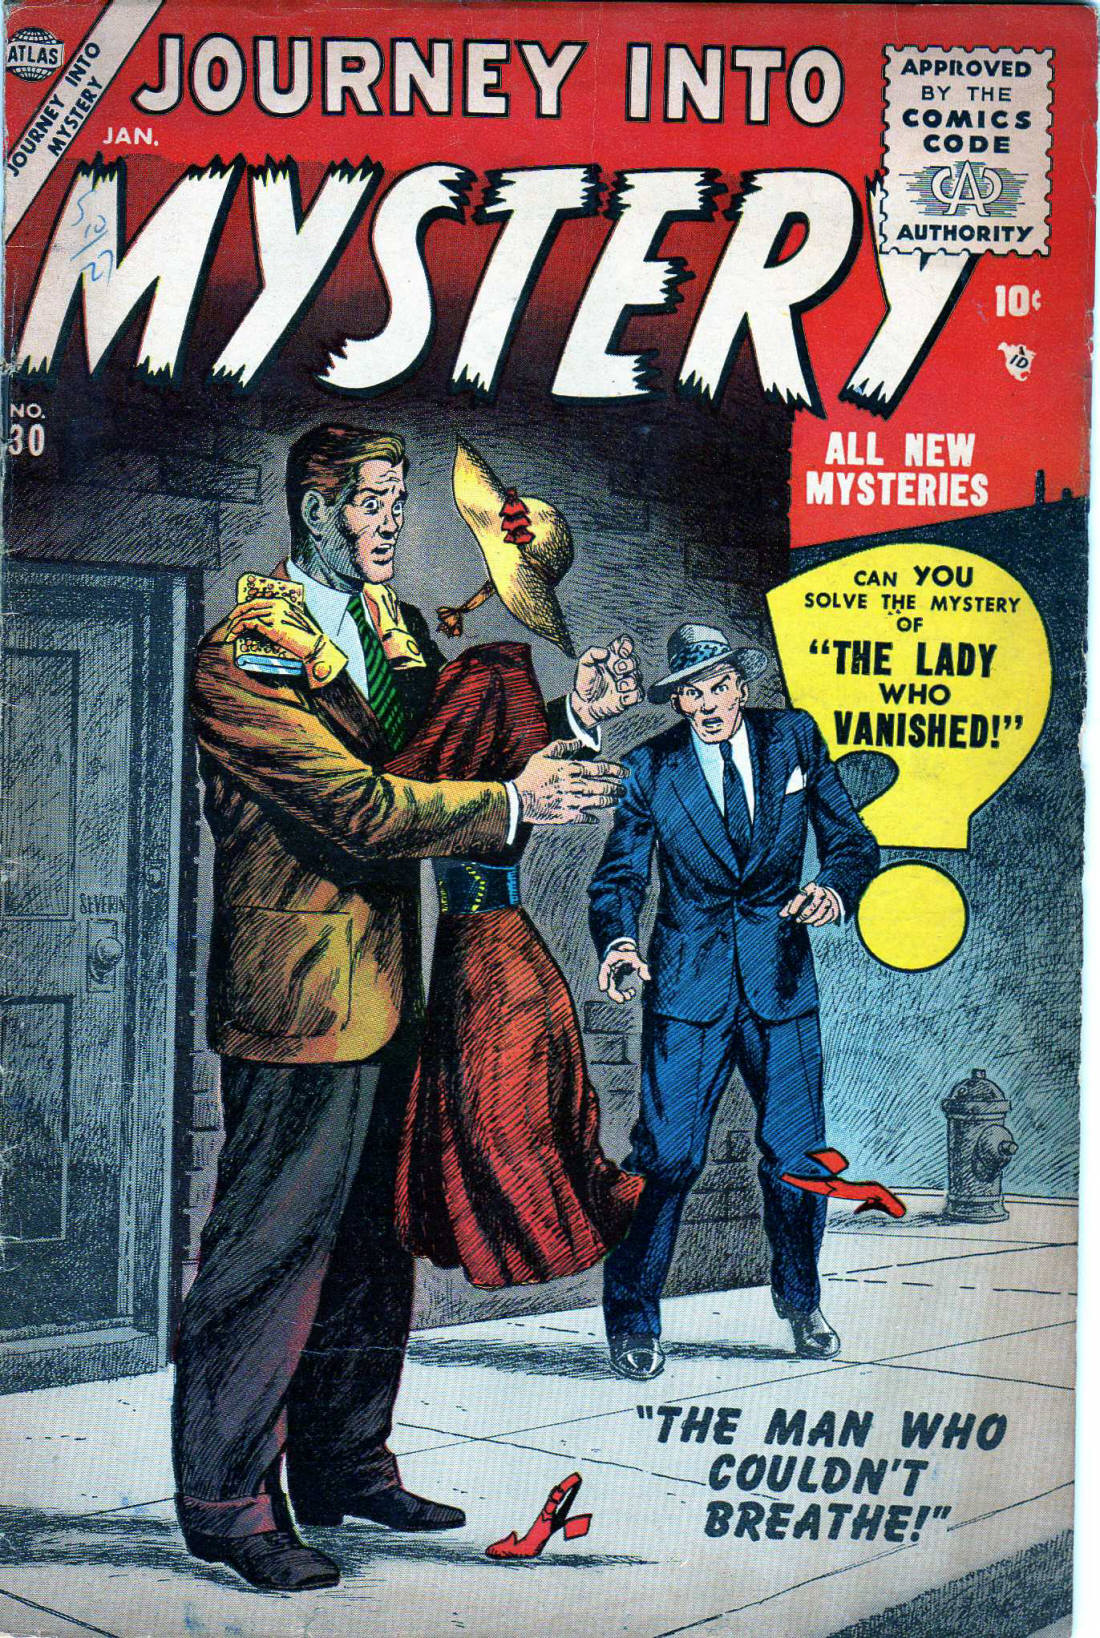 Journey Into Mystery (1952) #30, cover by John Severin.